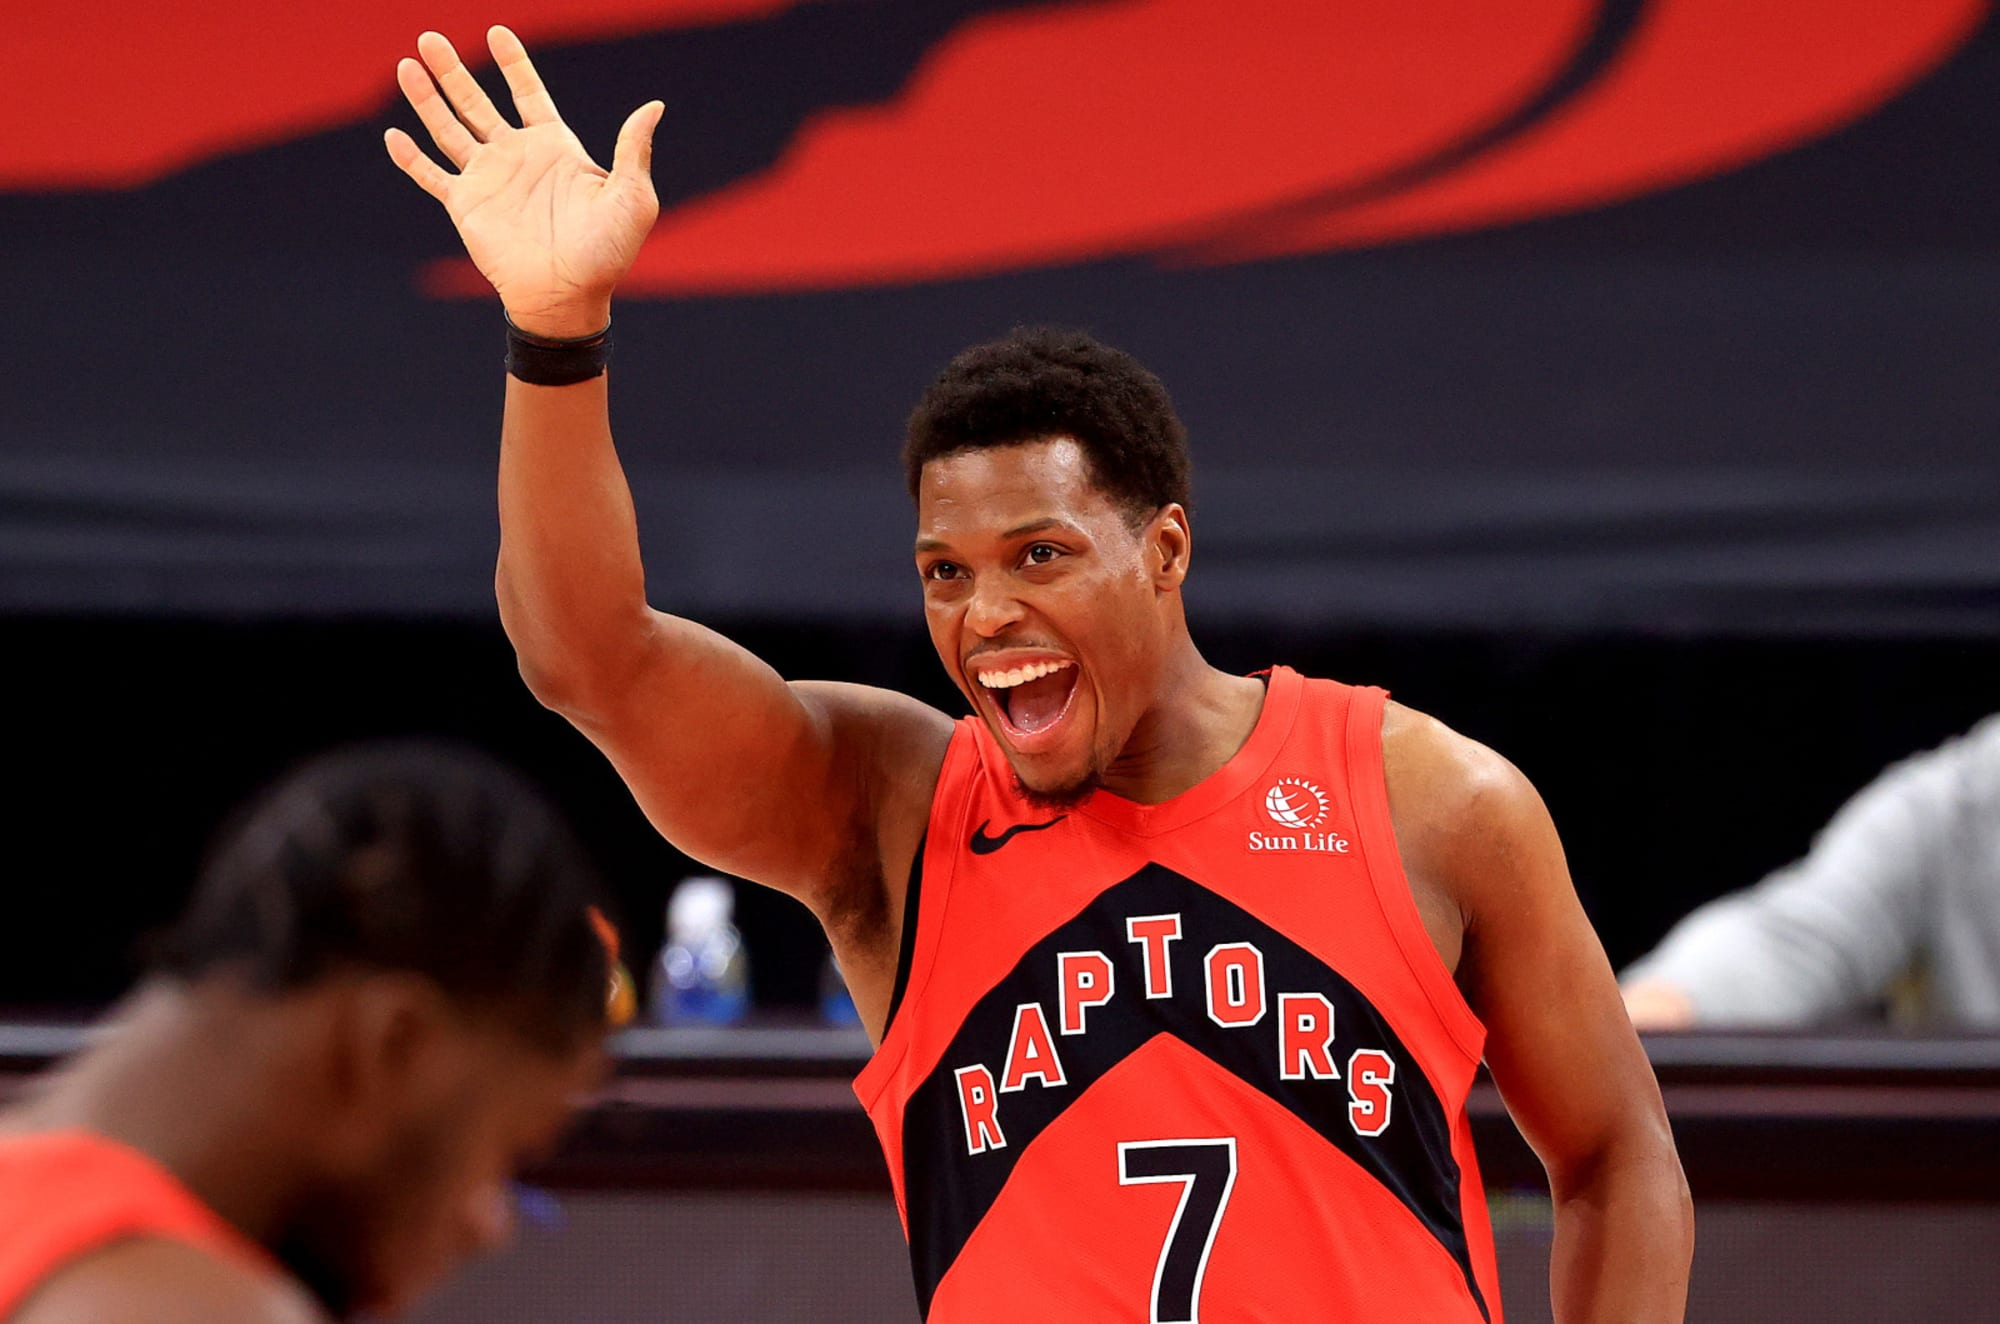 Raptors: Kyle Lowry passes Chris Bosh on all-time Raptors scoring list